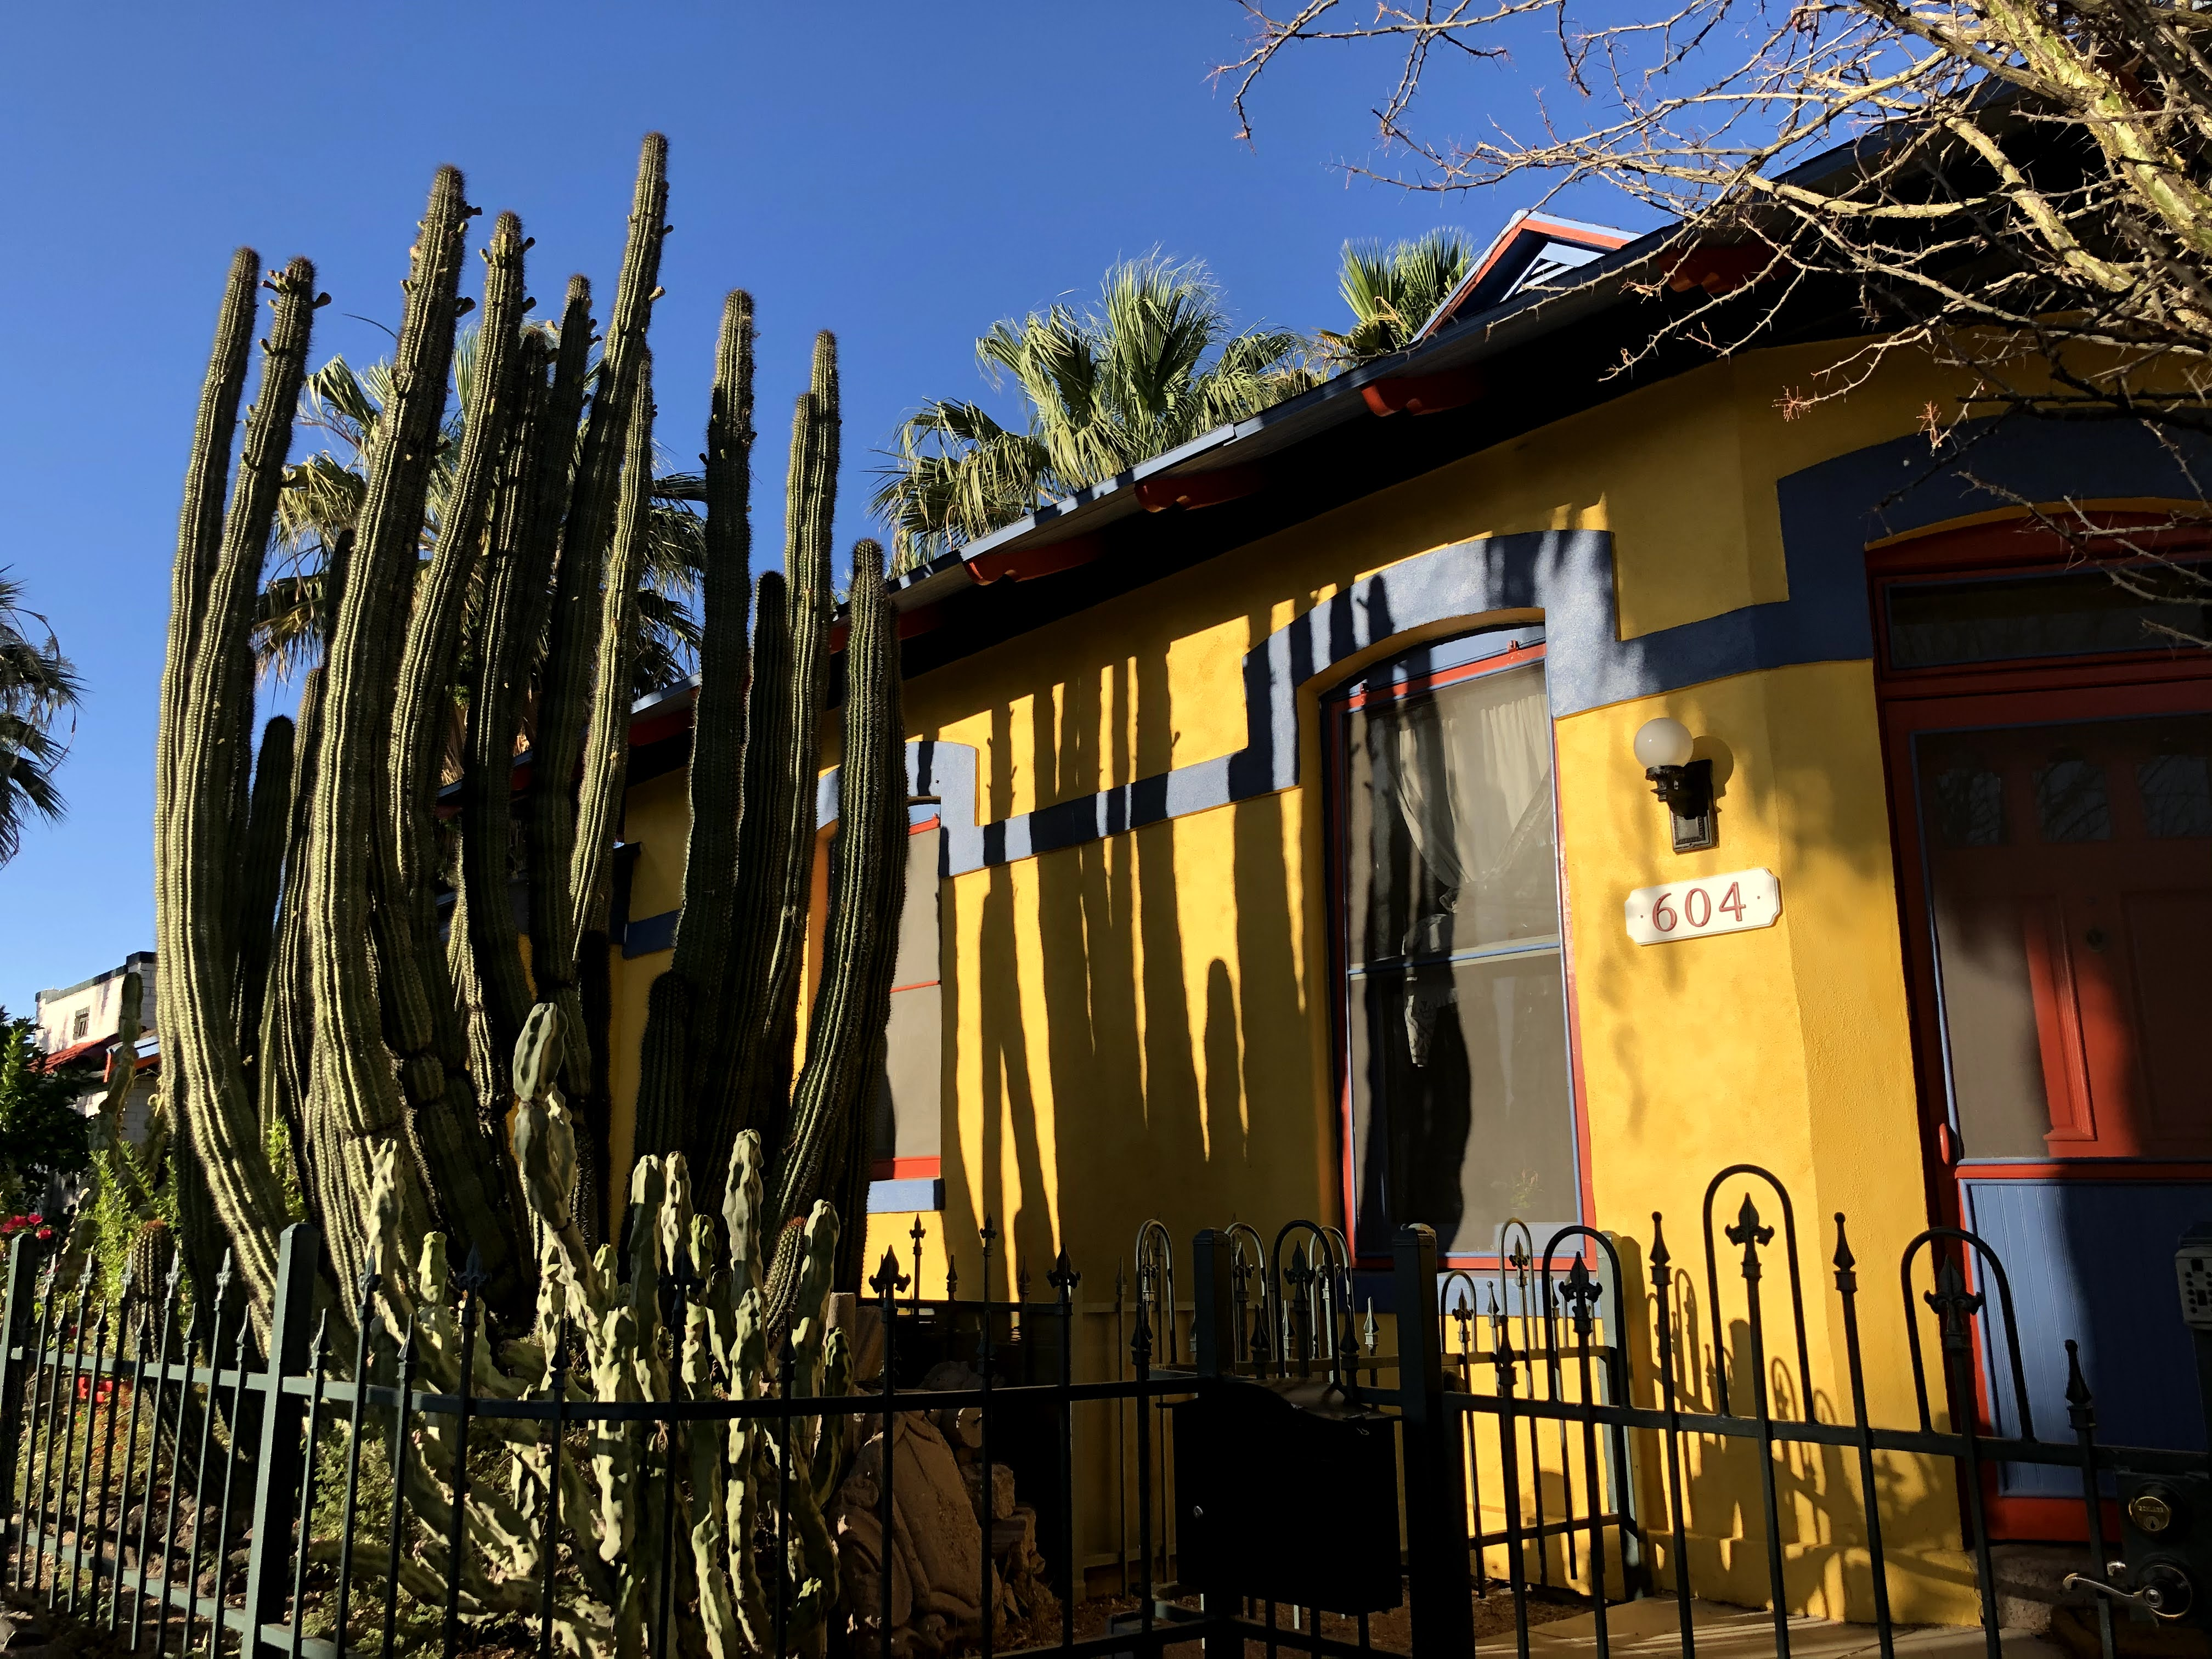 yellow house with huge cactus in front